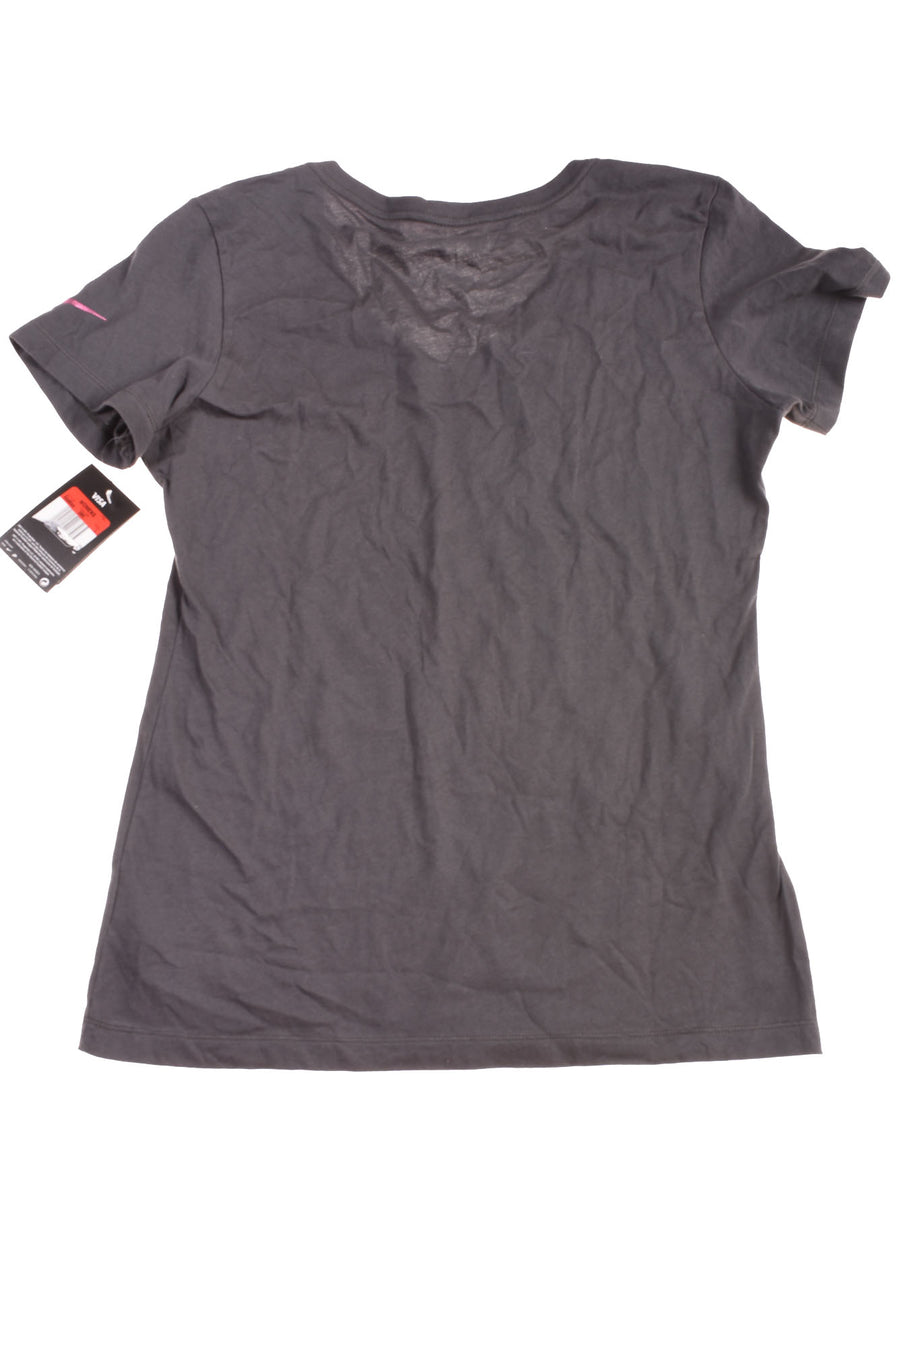 NEW Nike Women's Cleveland BrownsTop Large Gray & Pink